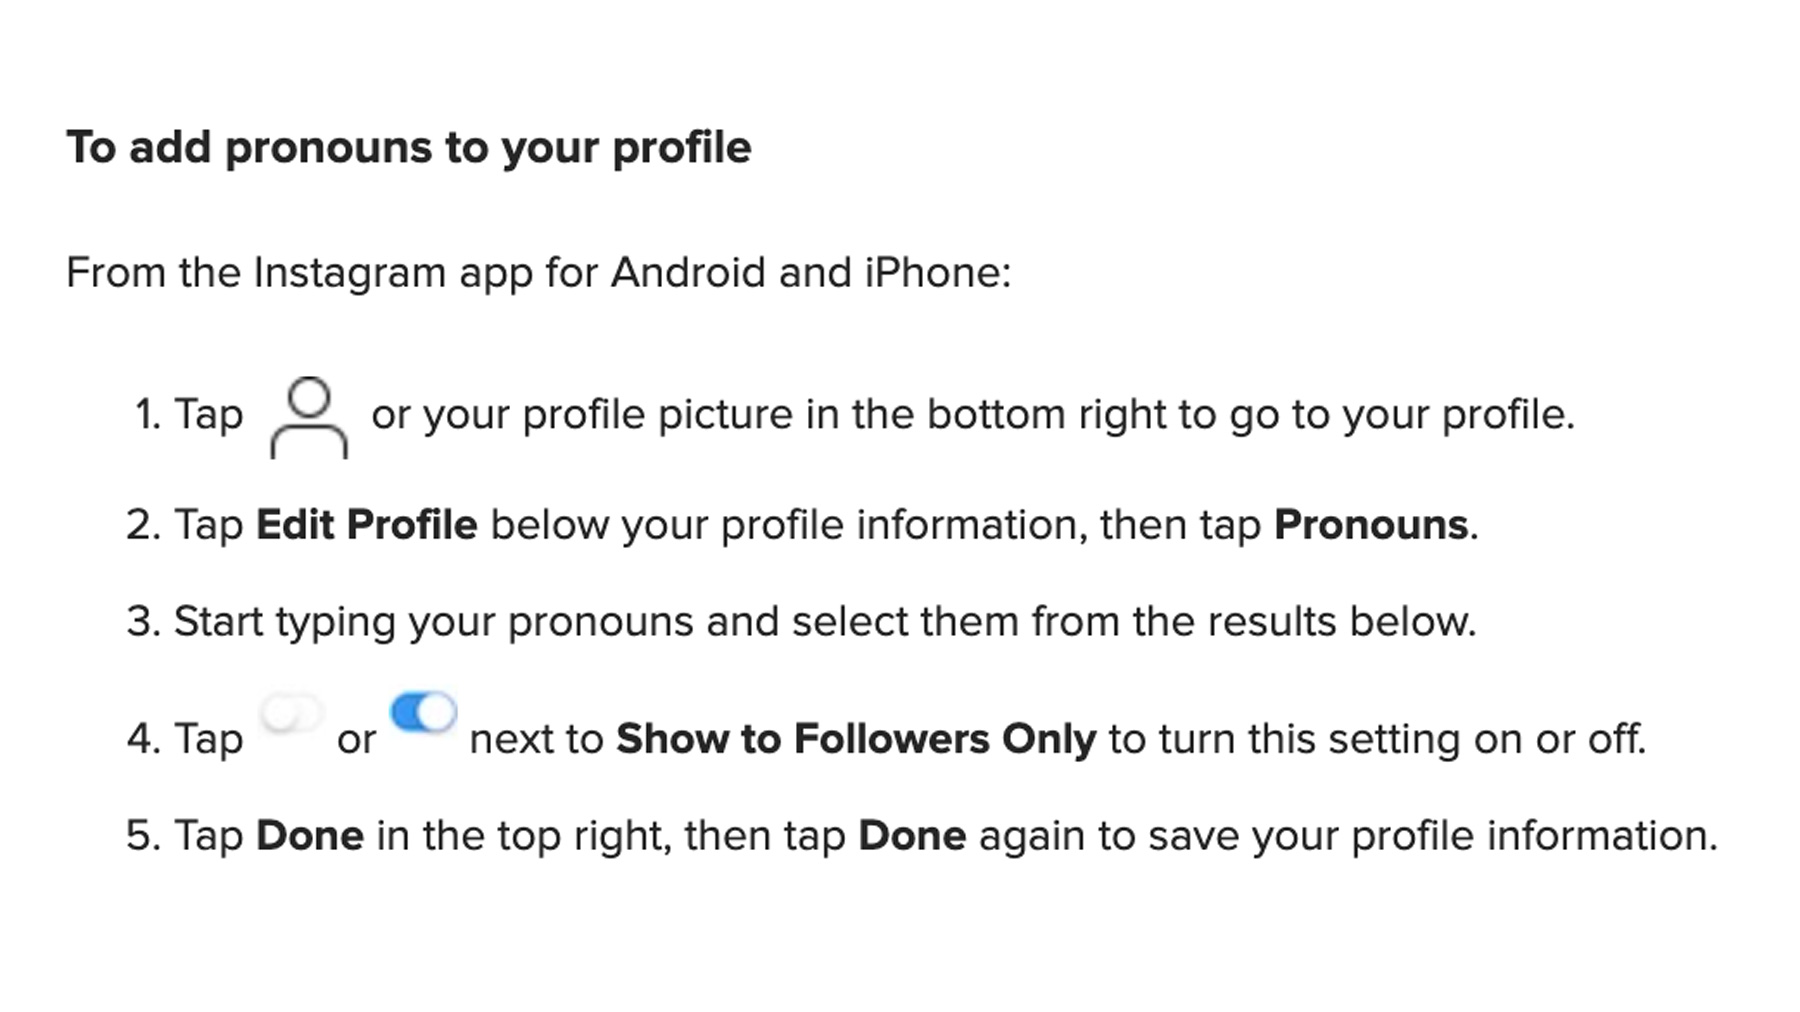 Instagram Introduces Feature for Users to Add or Change Pronouns on Their Profiles